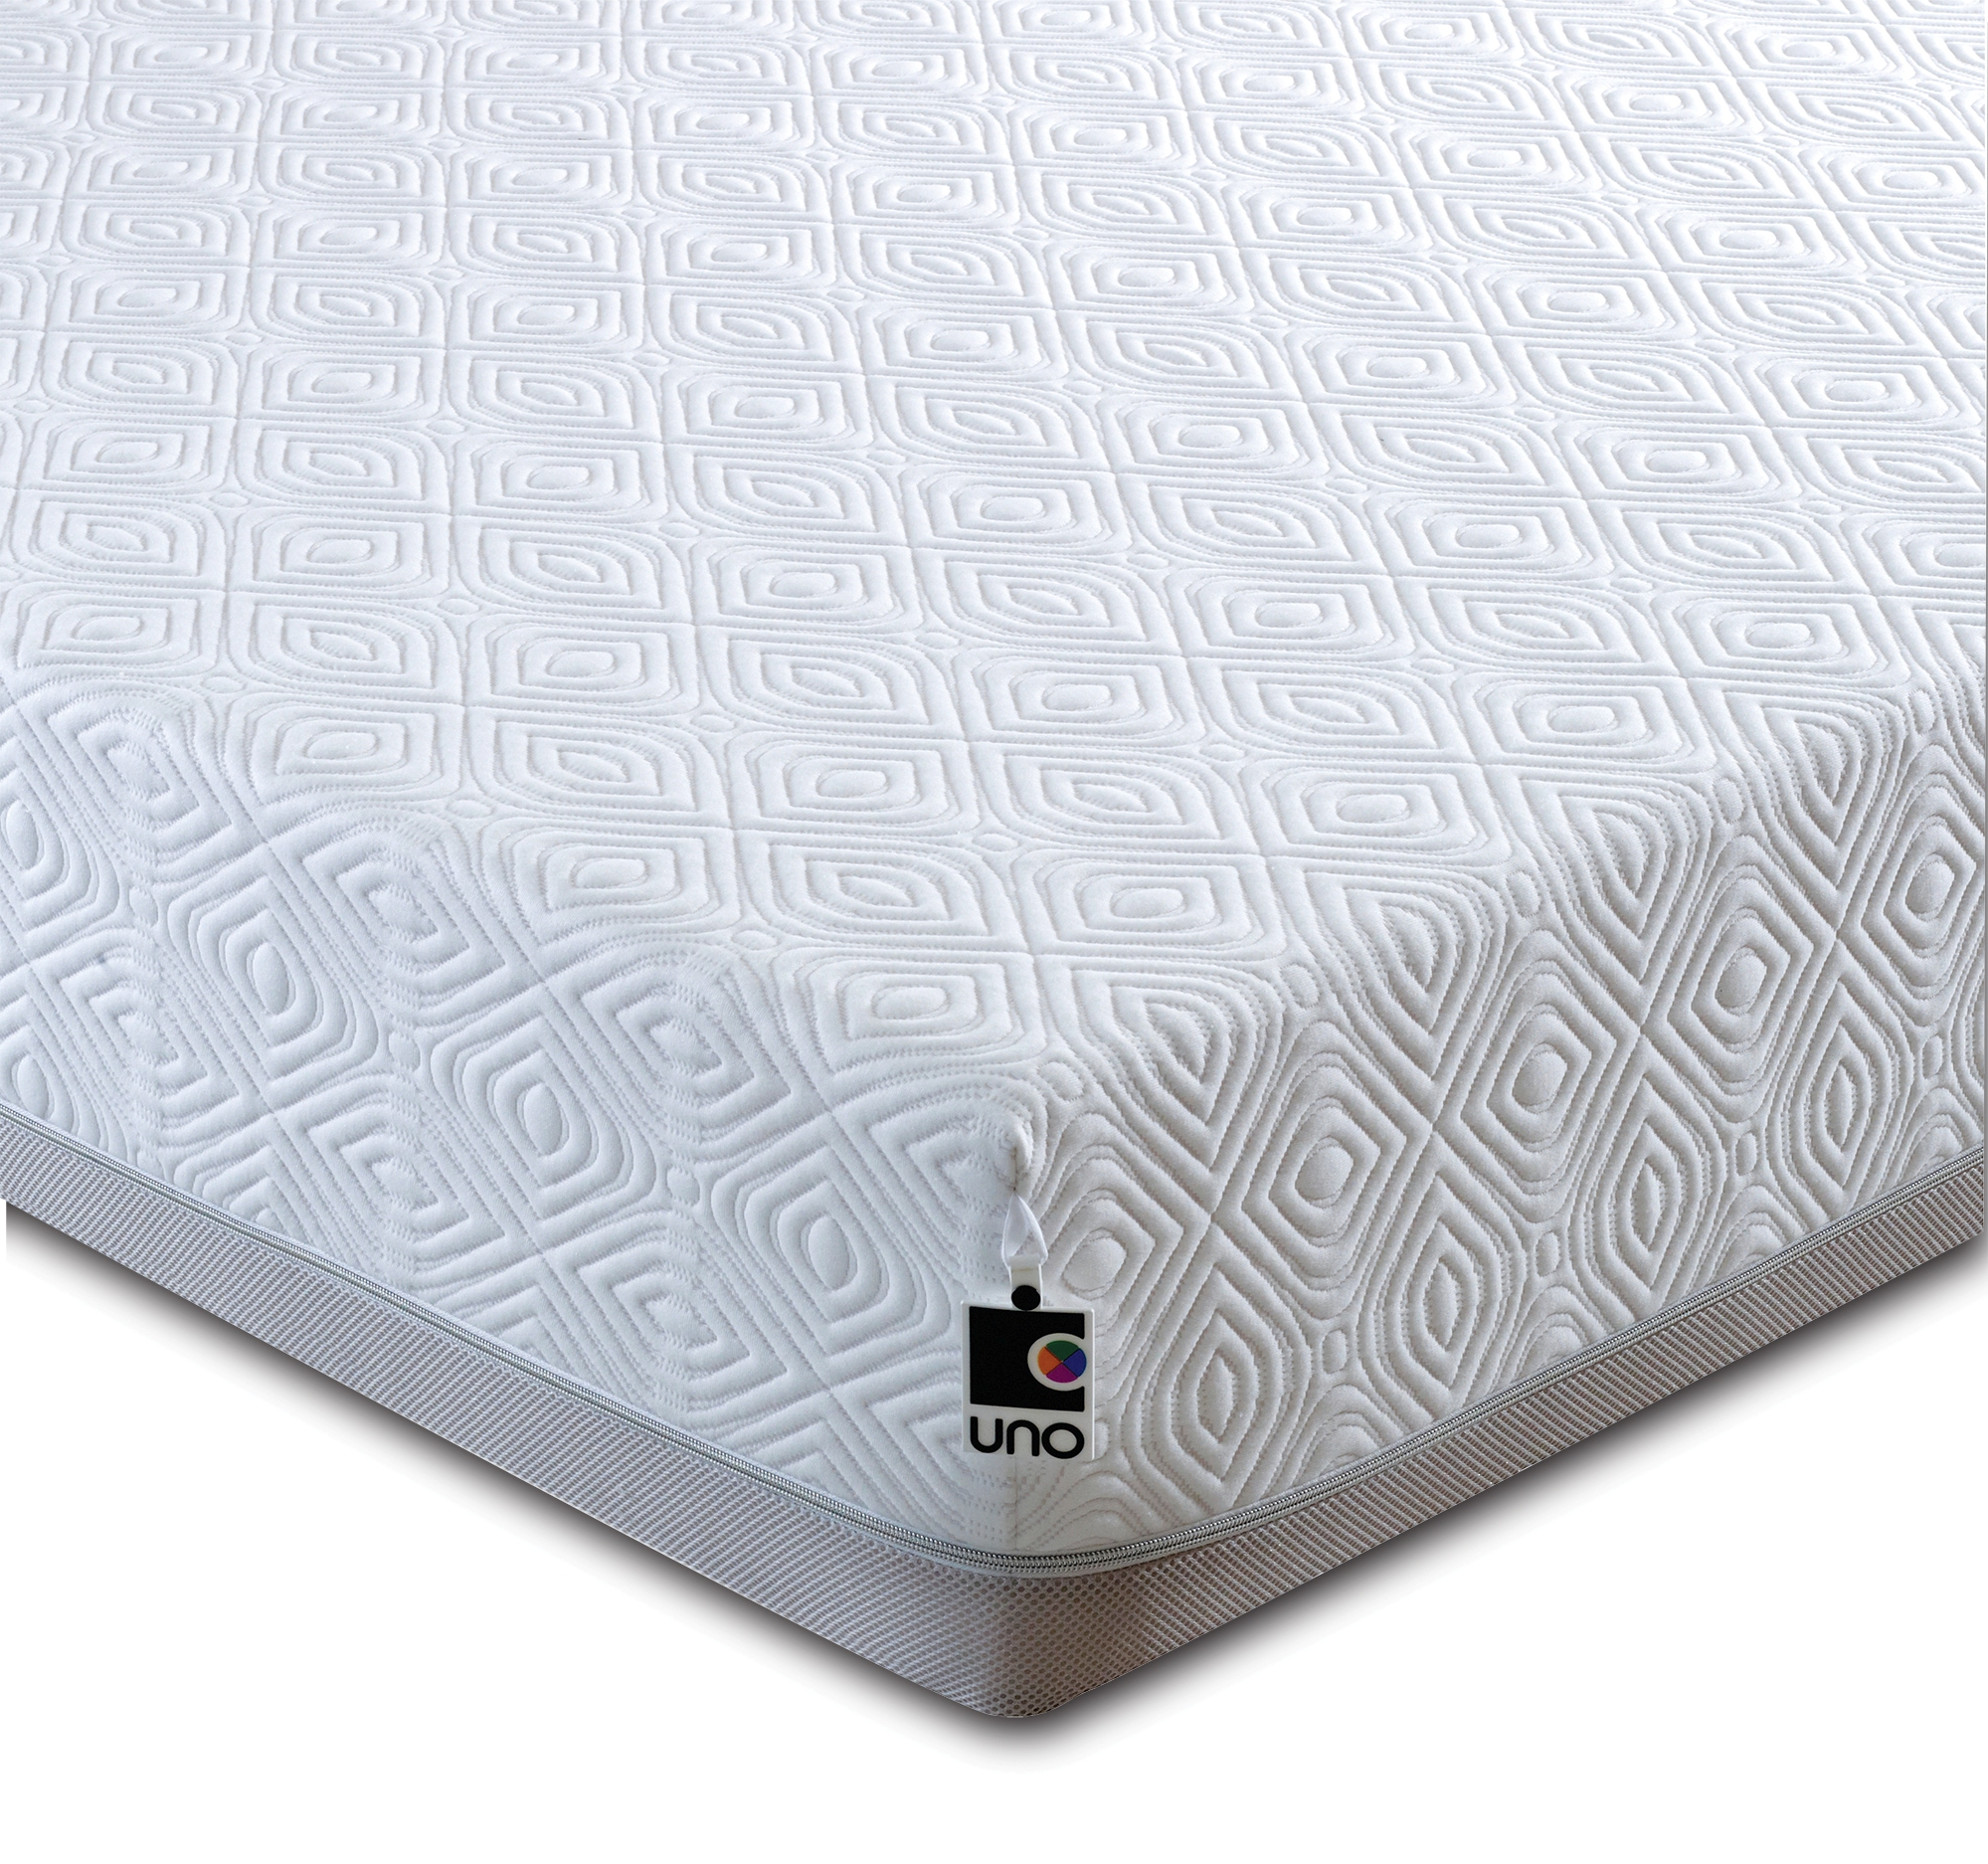 Uno memory pocket 2000 memory foam mattress